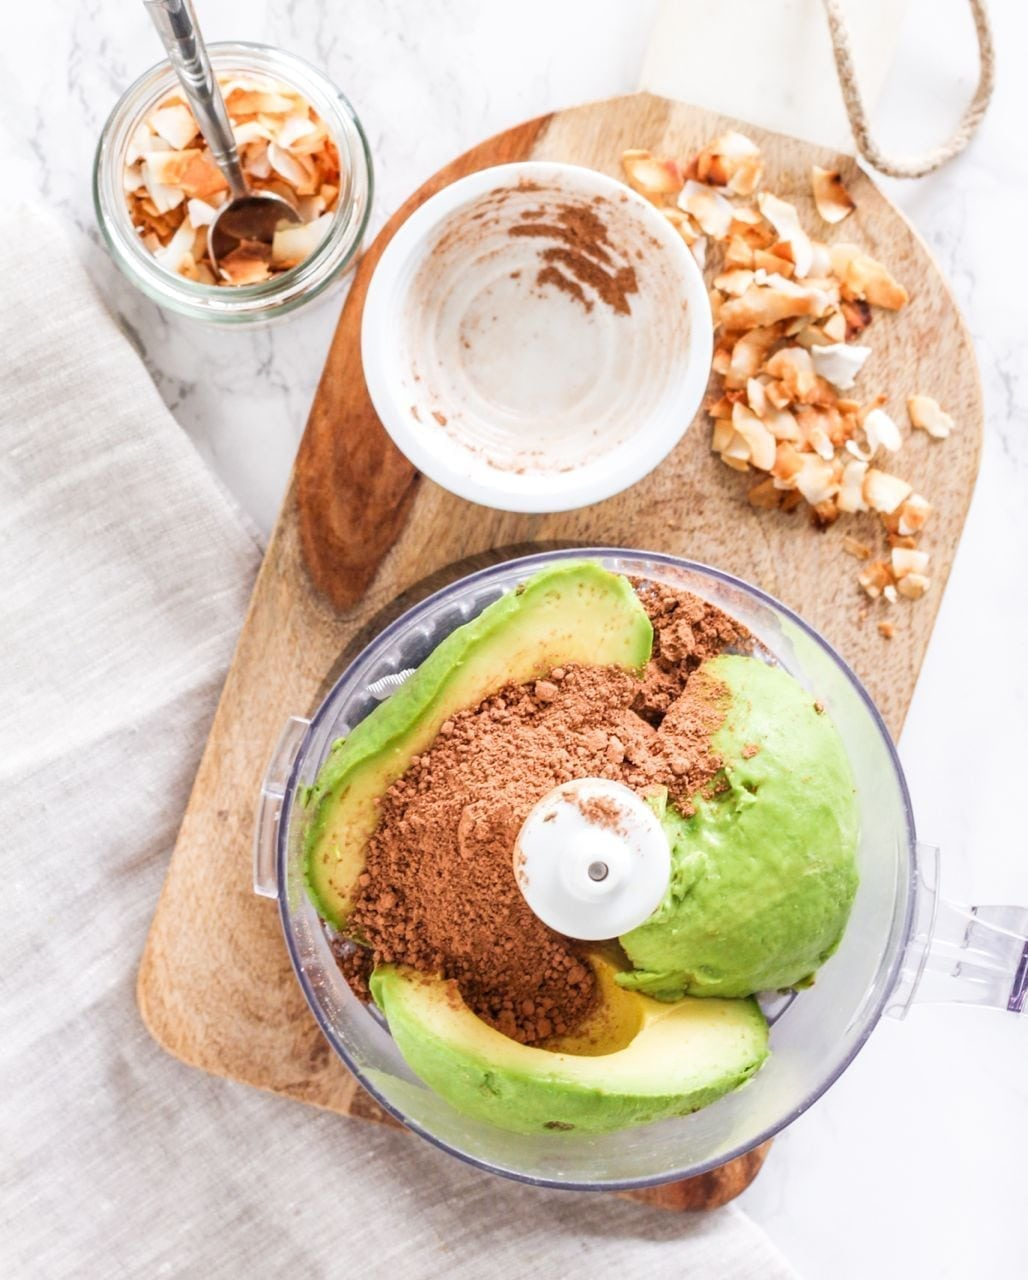 Toasted Coconut Chocolate Avocado Mousse | Eat, Spin, Run, Repeat